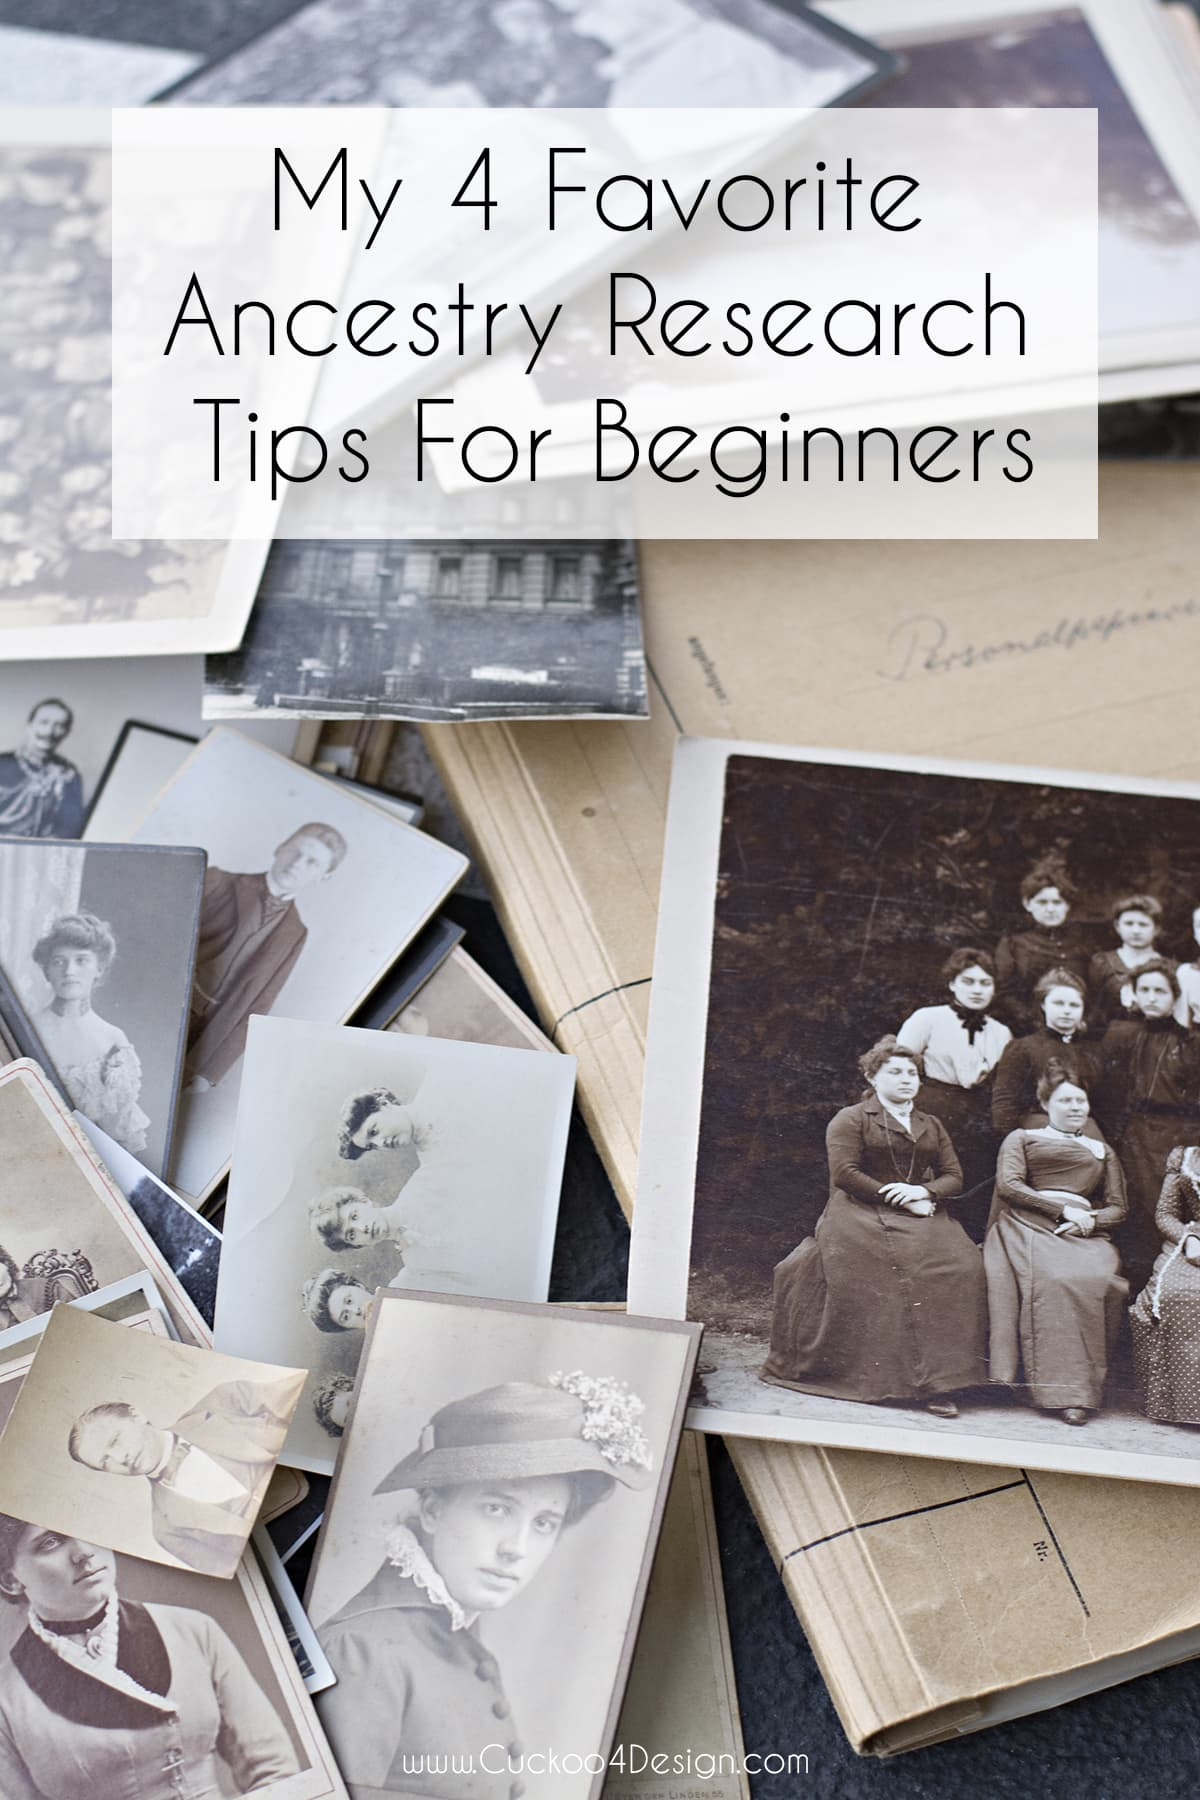 My 4 favorite ancestry research tip for beginners